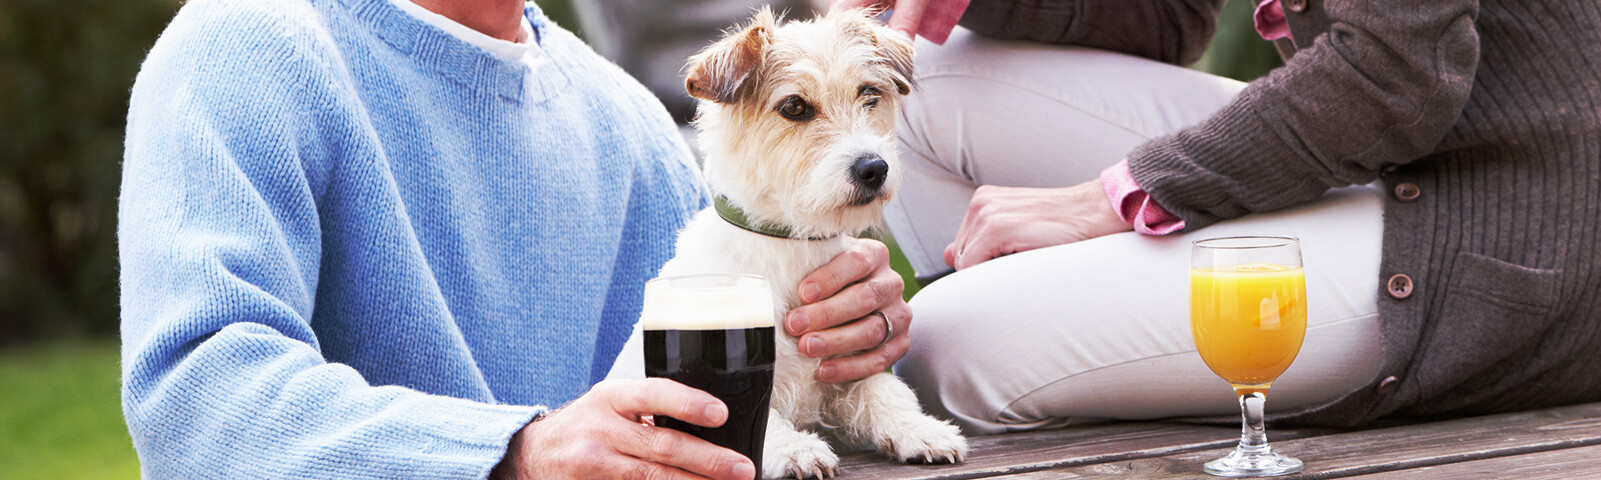 Find the perfect pub or cafes on your journey - Driving with Dogs